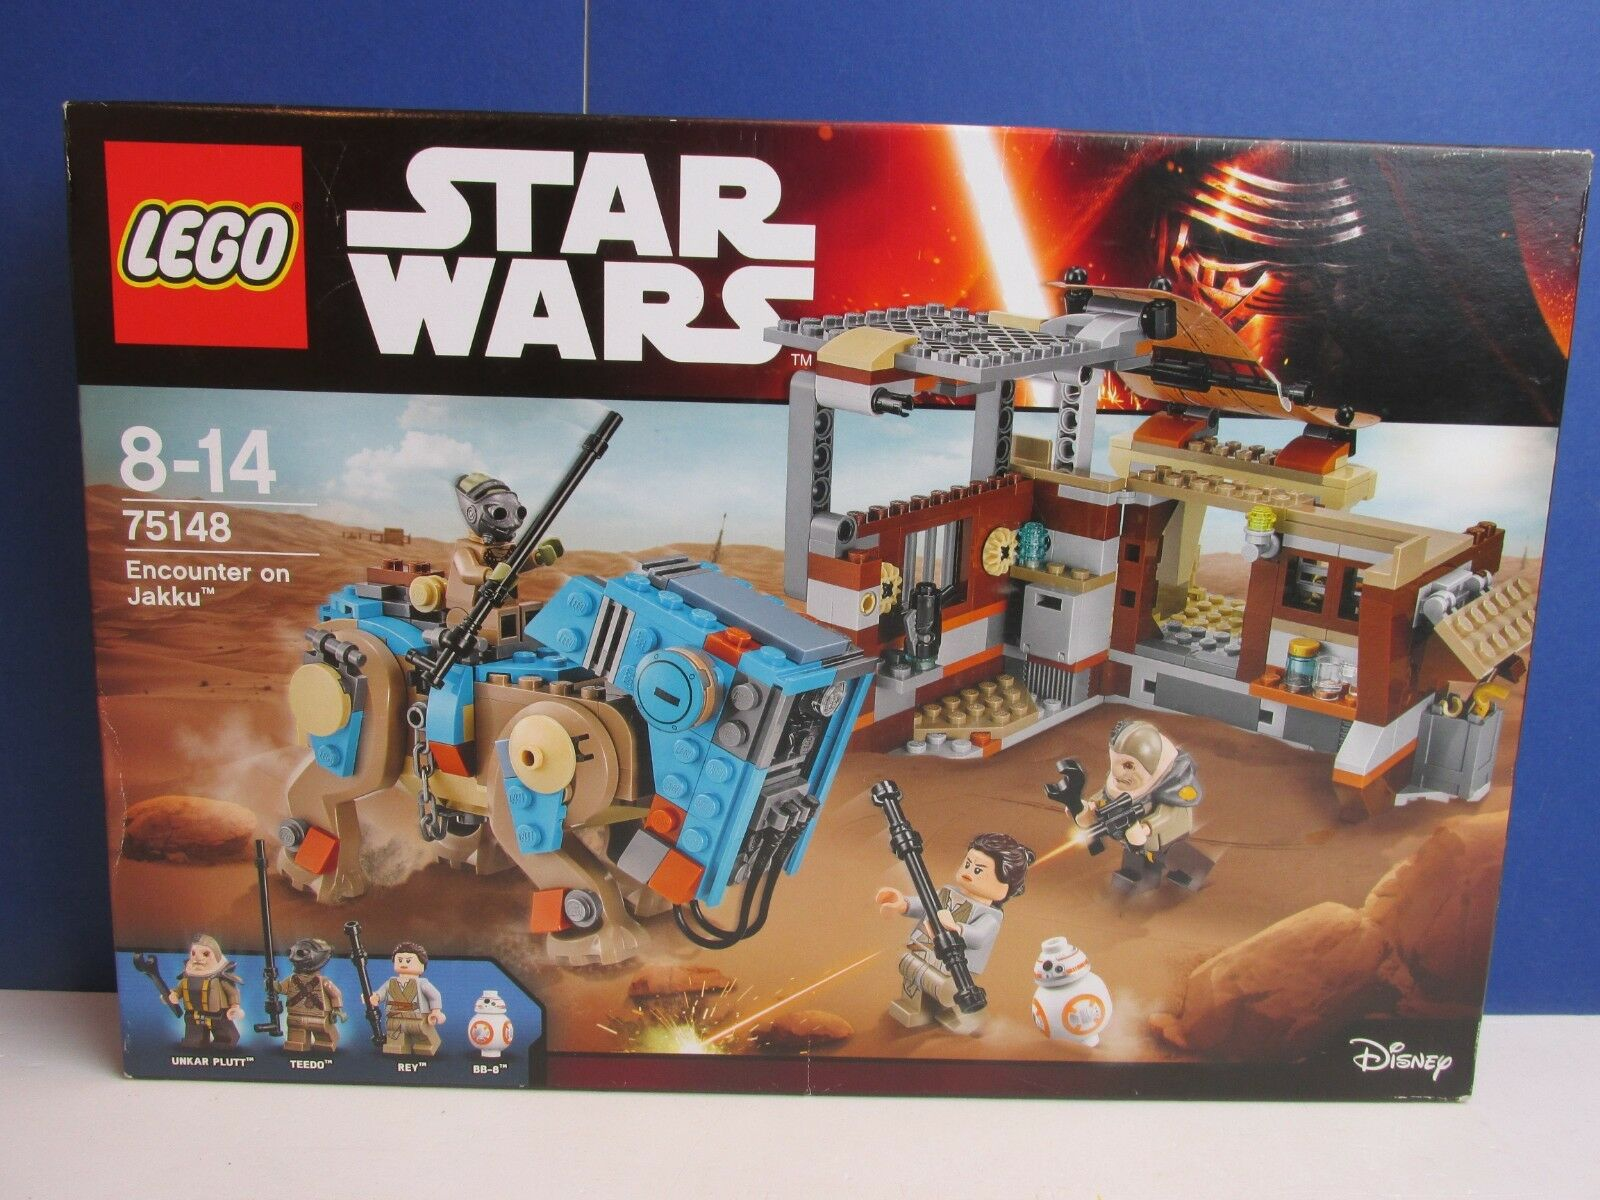 NEW lego 75148 star wars ENCOUNTER ON JAKKU force awkens BB-8 REY UNKAR PLUTT